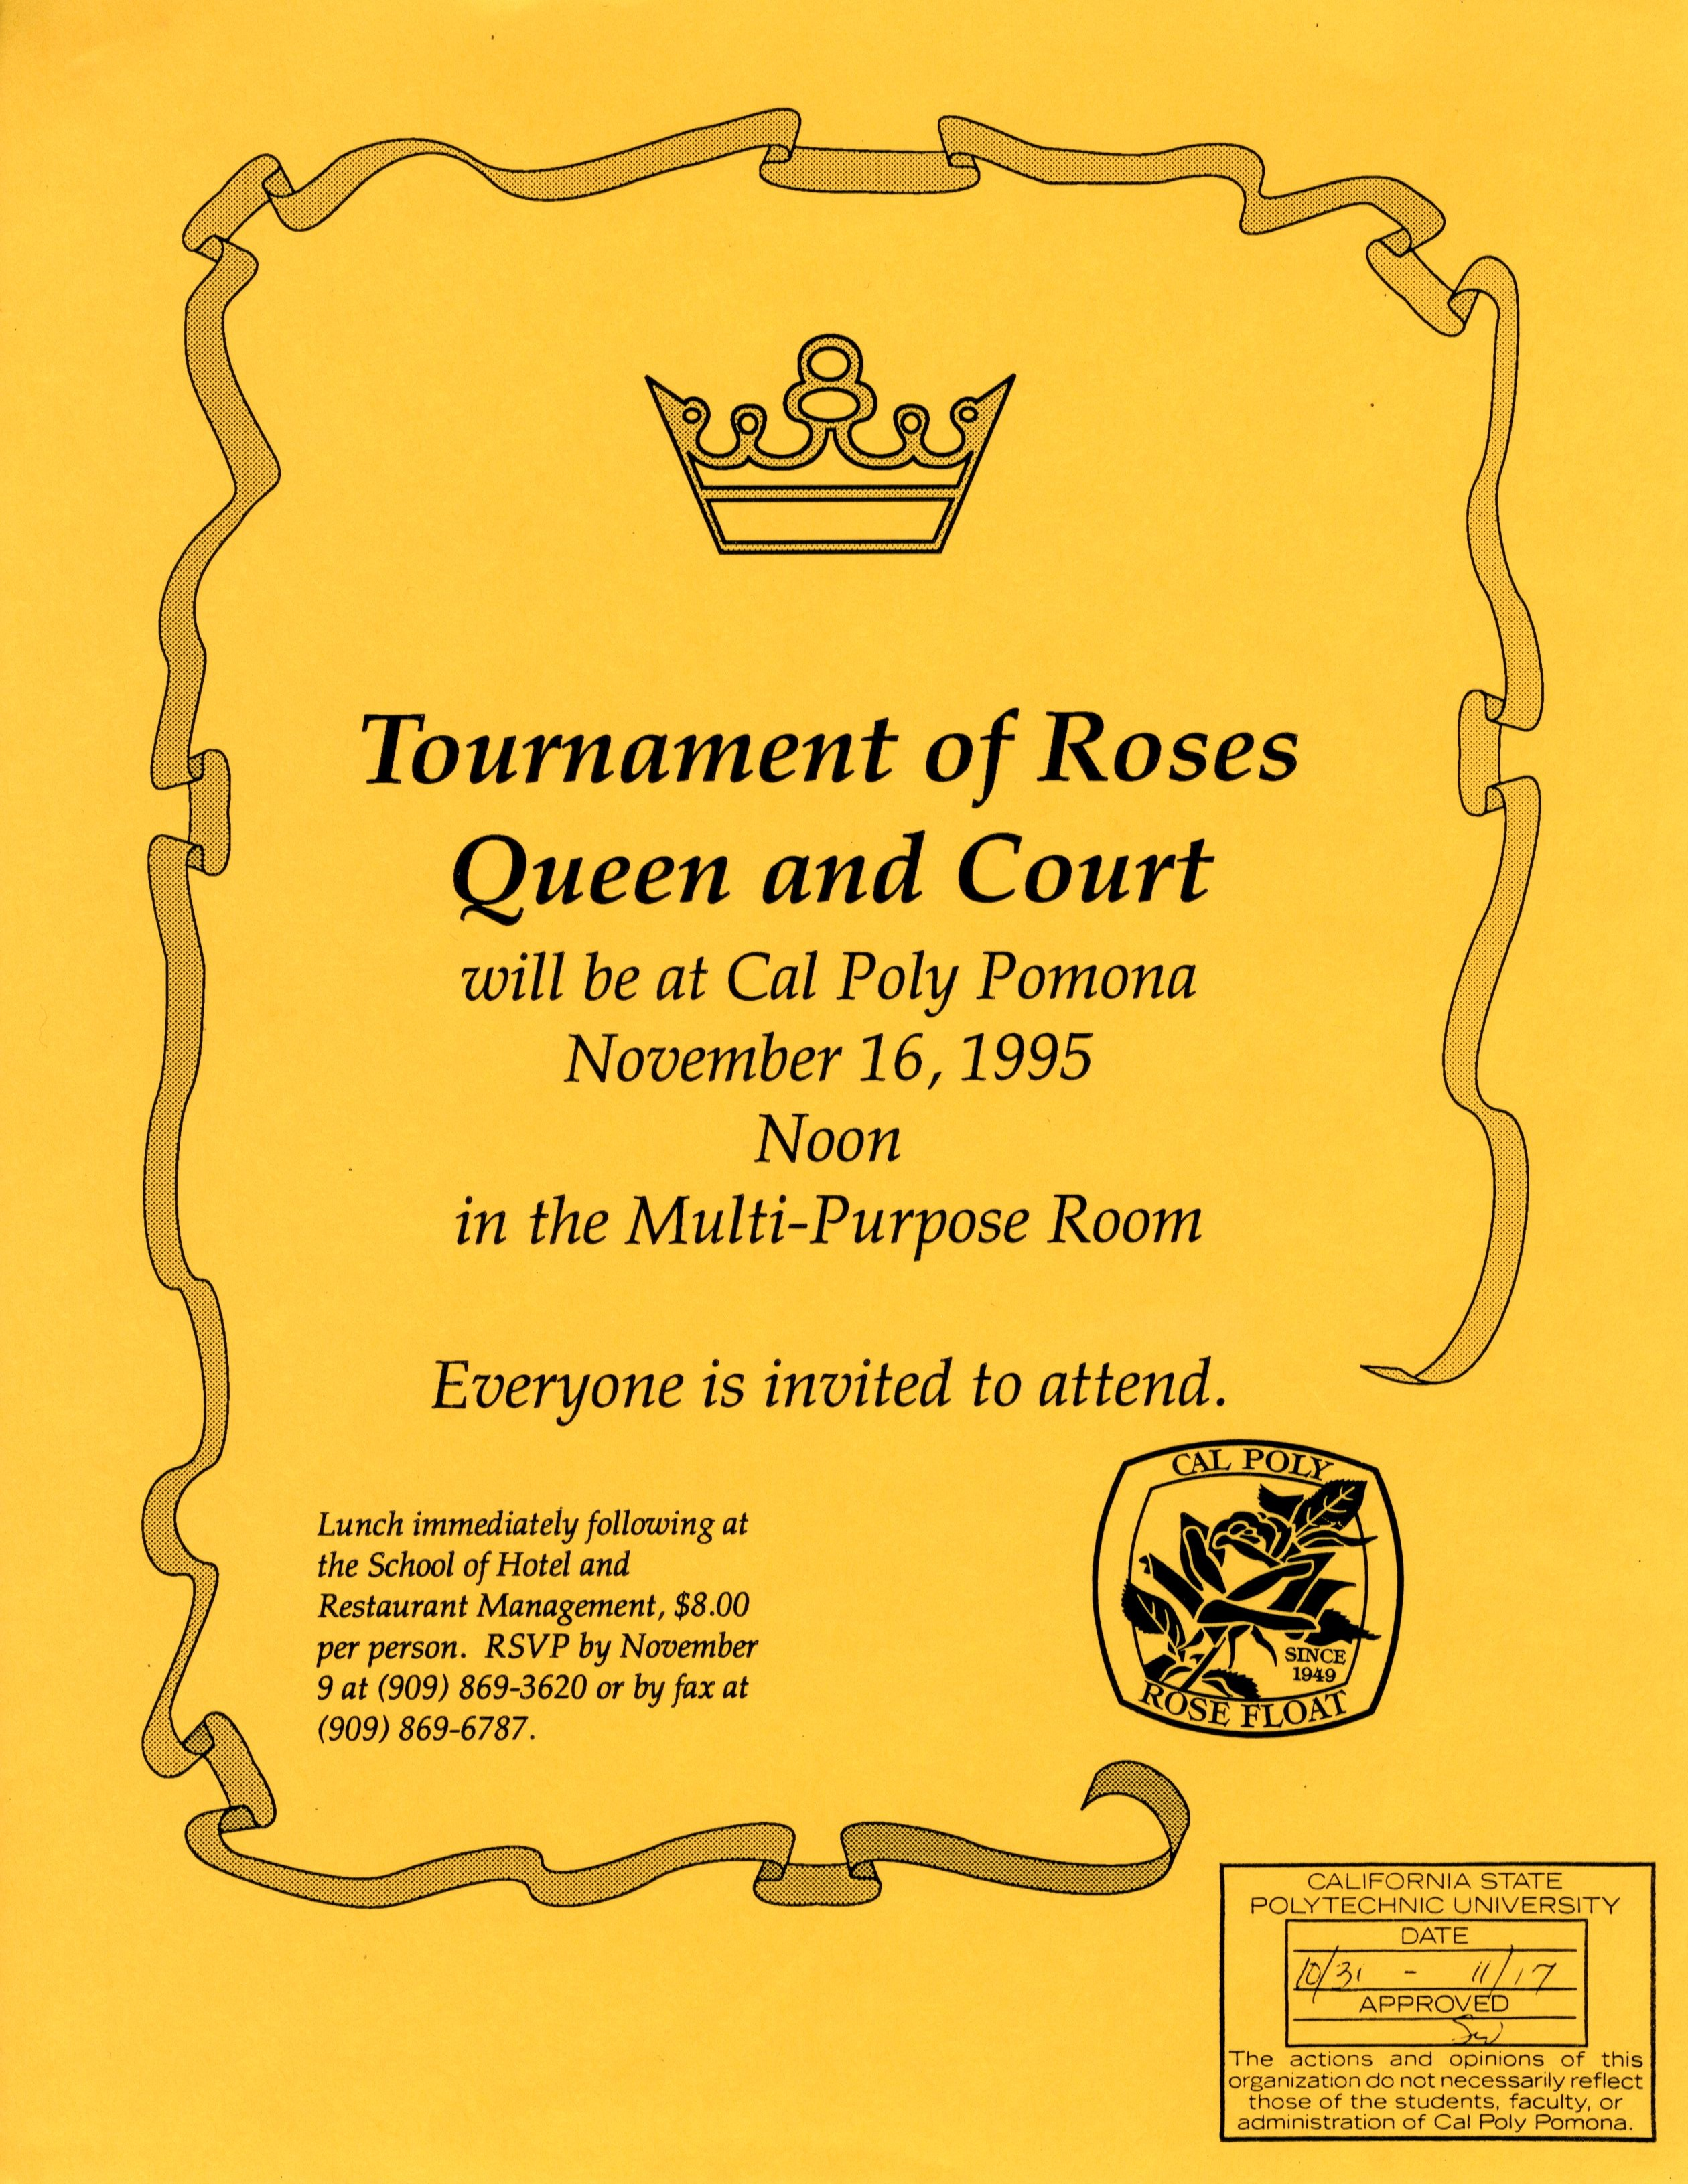 Tournament of Roses flyer